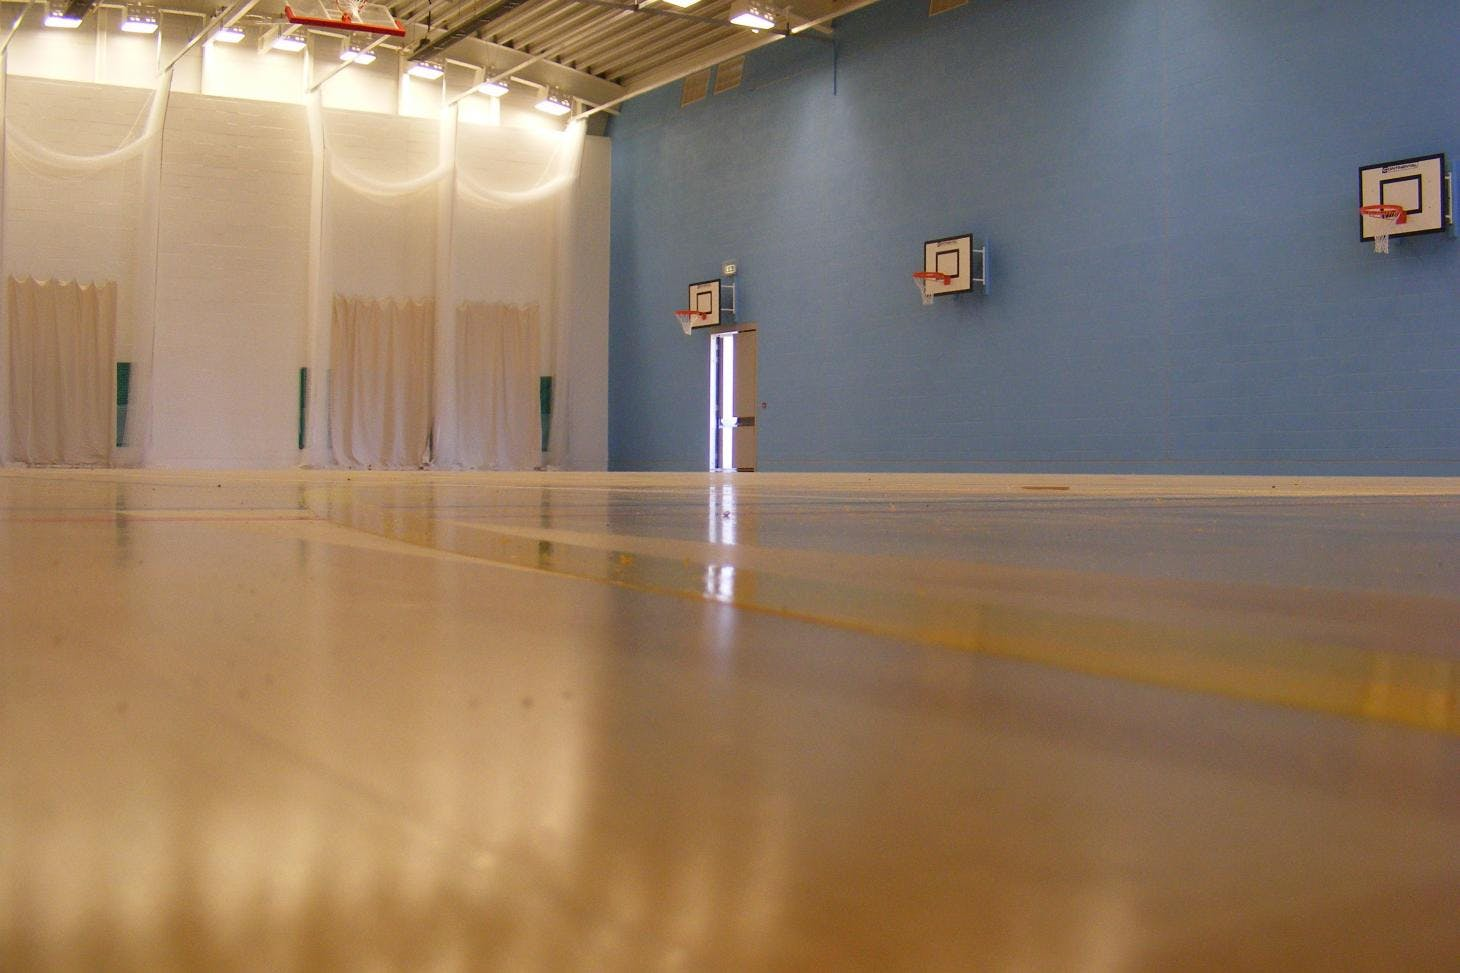 Dagenham Park Leisure Centre Indoor basketball court